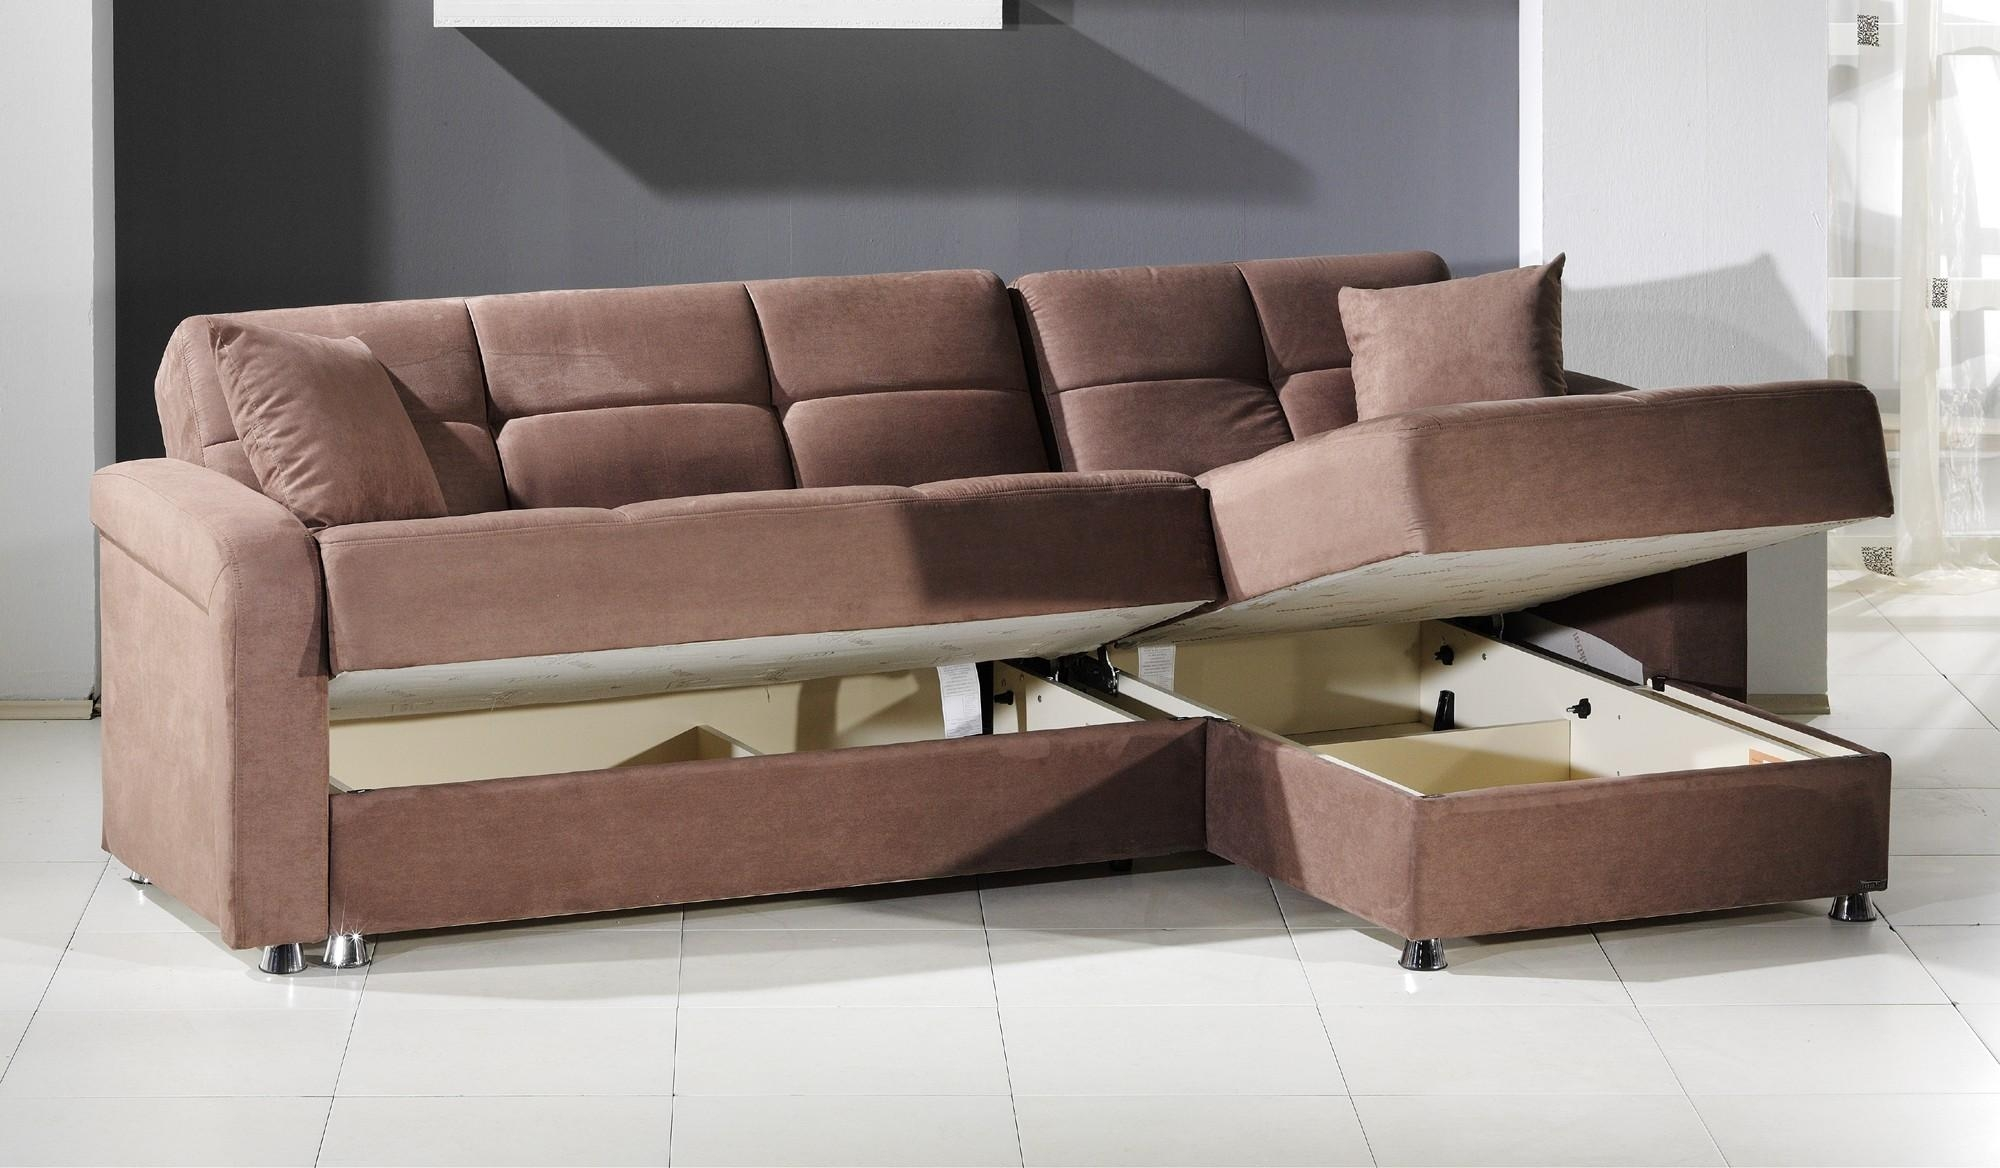 Vision Convertible Sectional Sofa In Rainbow Truffleistikbal within Convertible Sectional